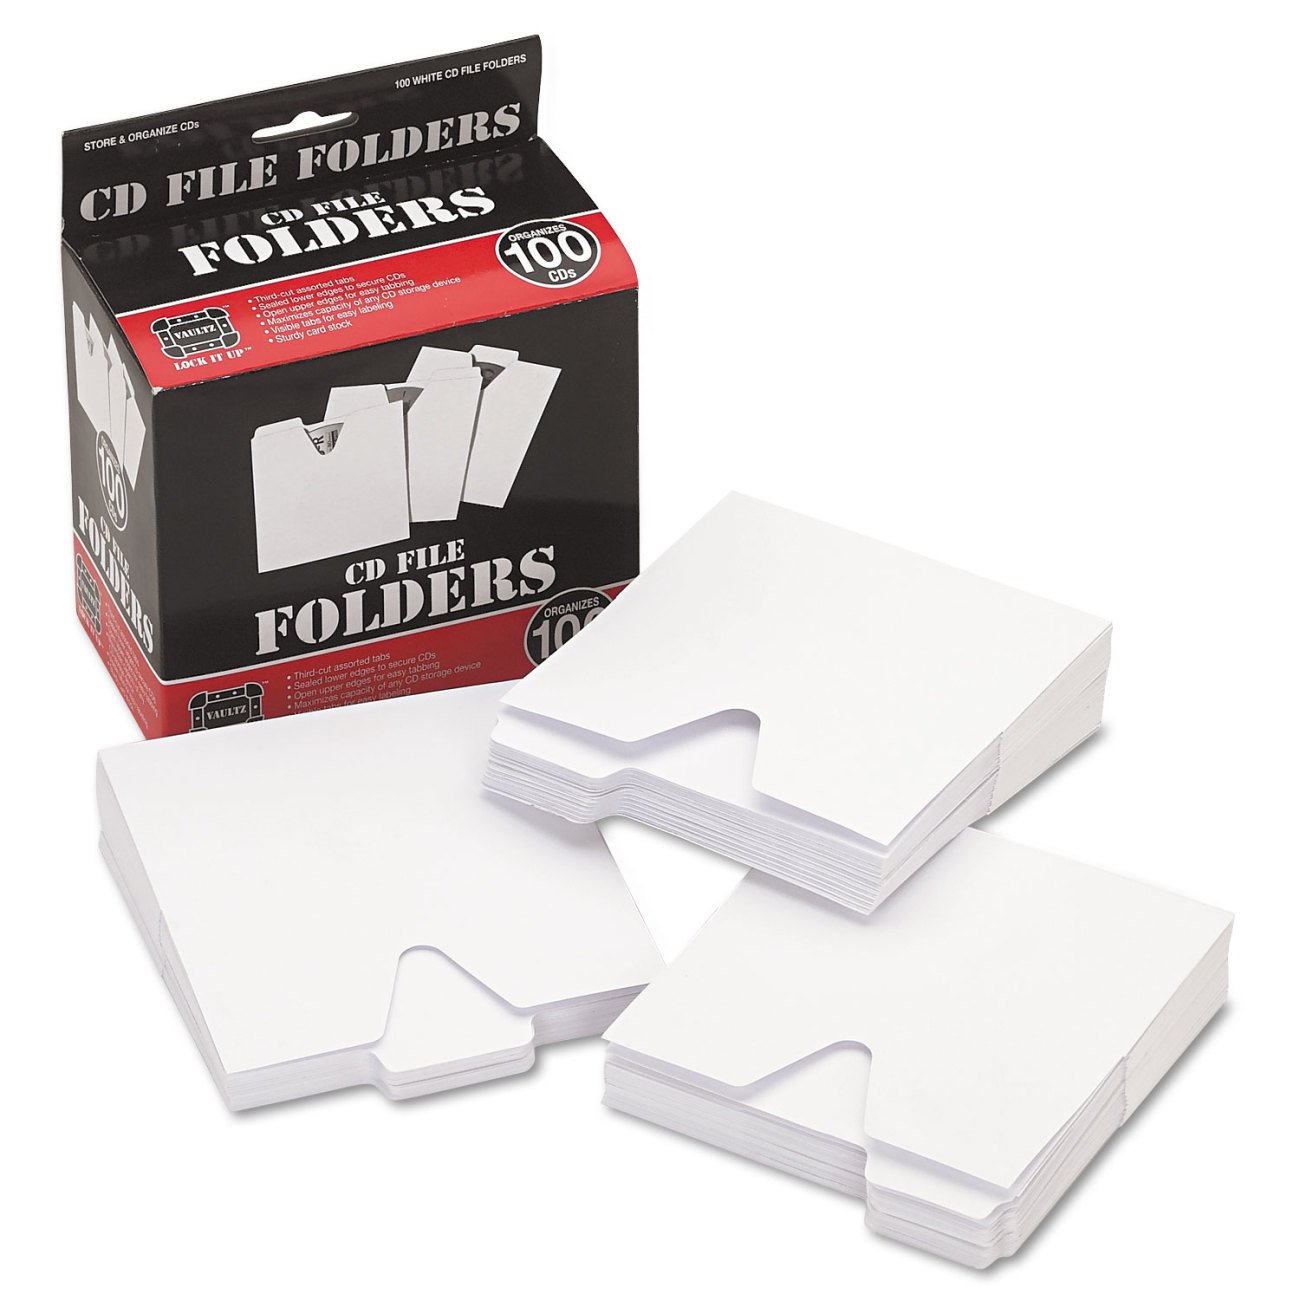 Vaultz Cd Storage File Folders 100 Folders Per Box White